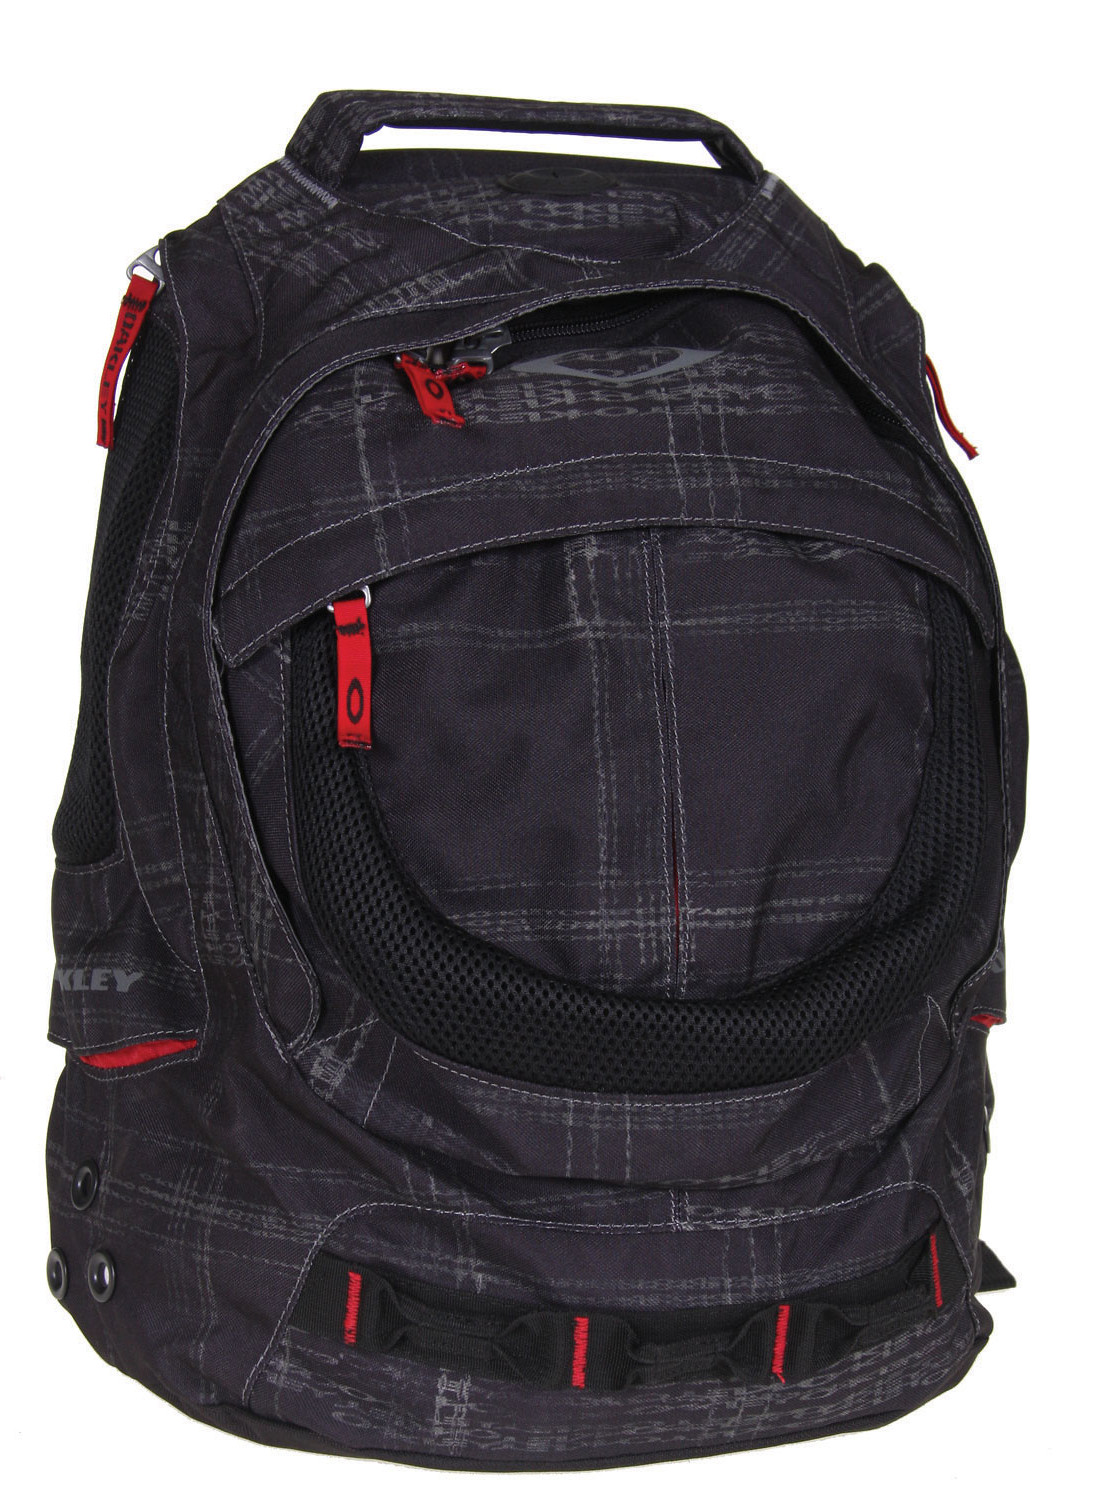 Oakley Fifty 2.0 Backpack Black  oakley-fifty20-plaid-pack-blkprint-09.jpg